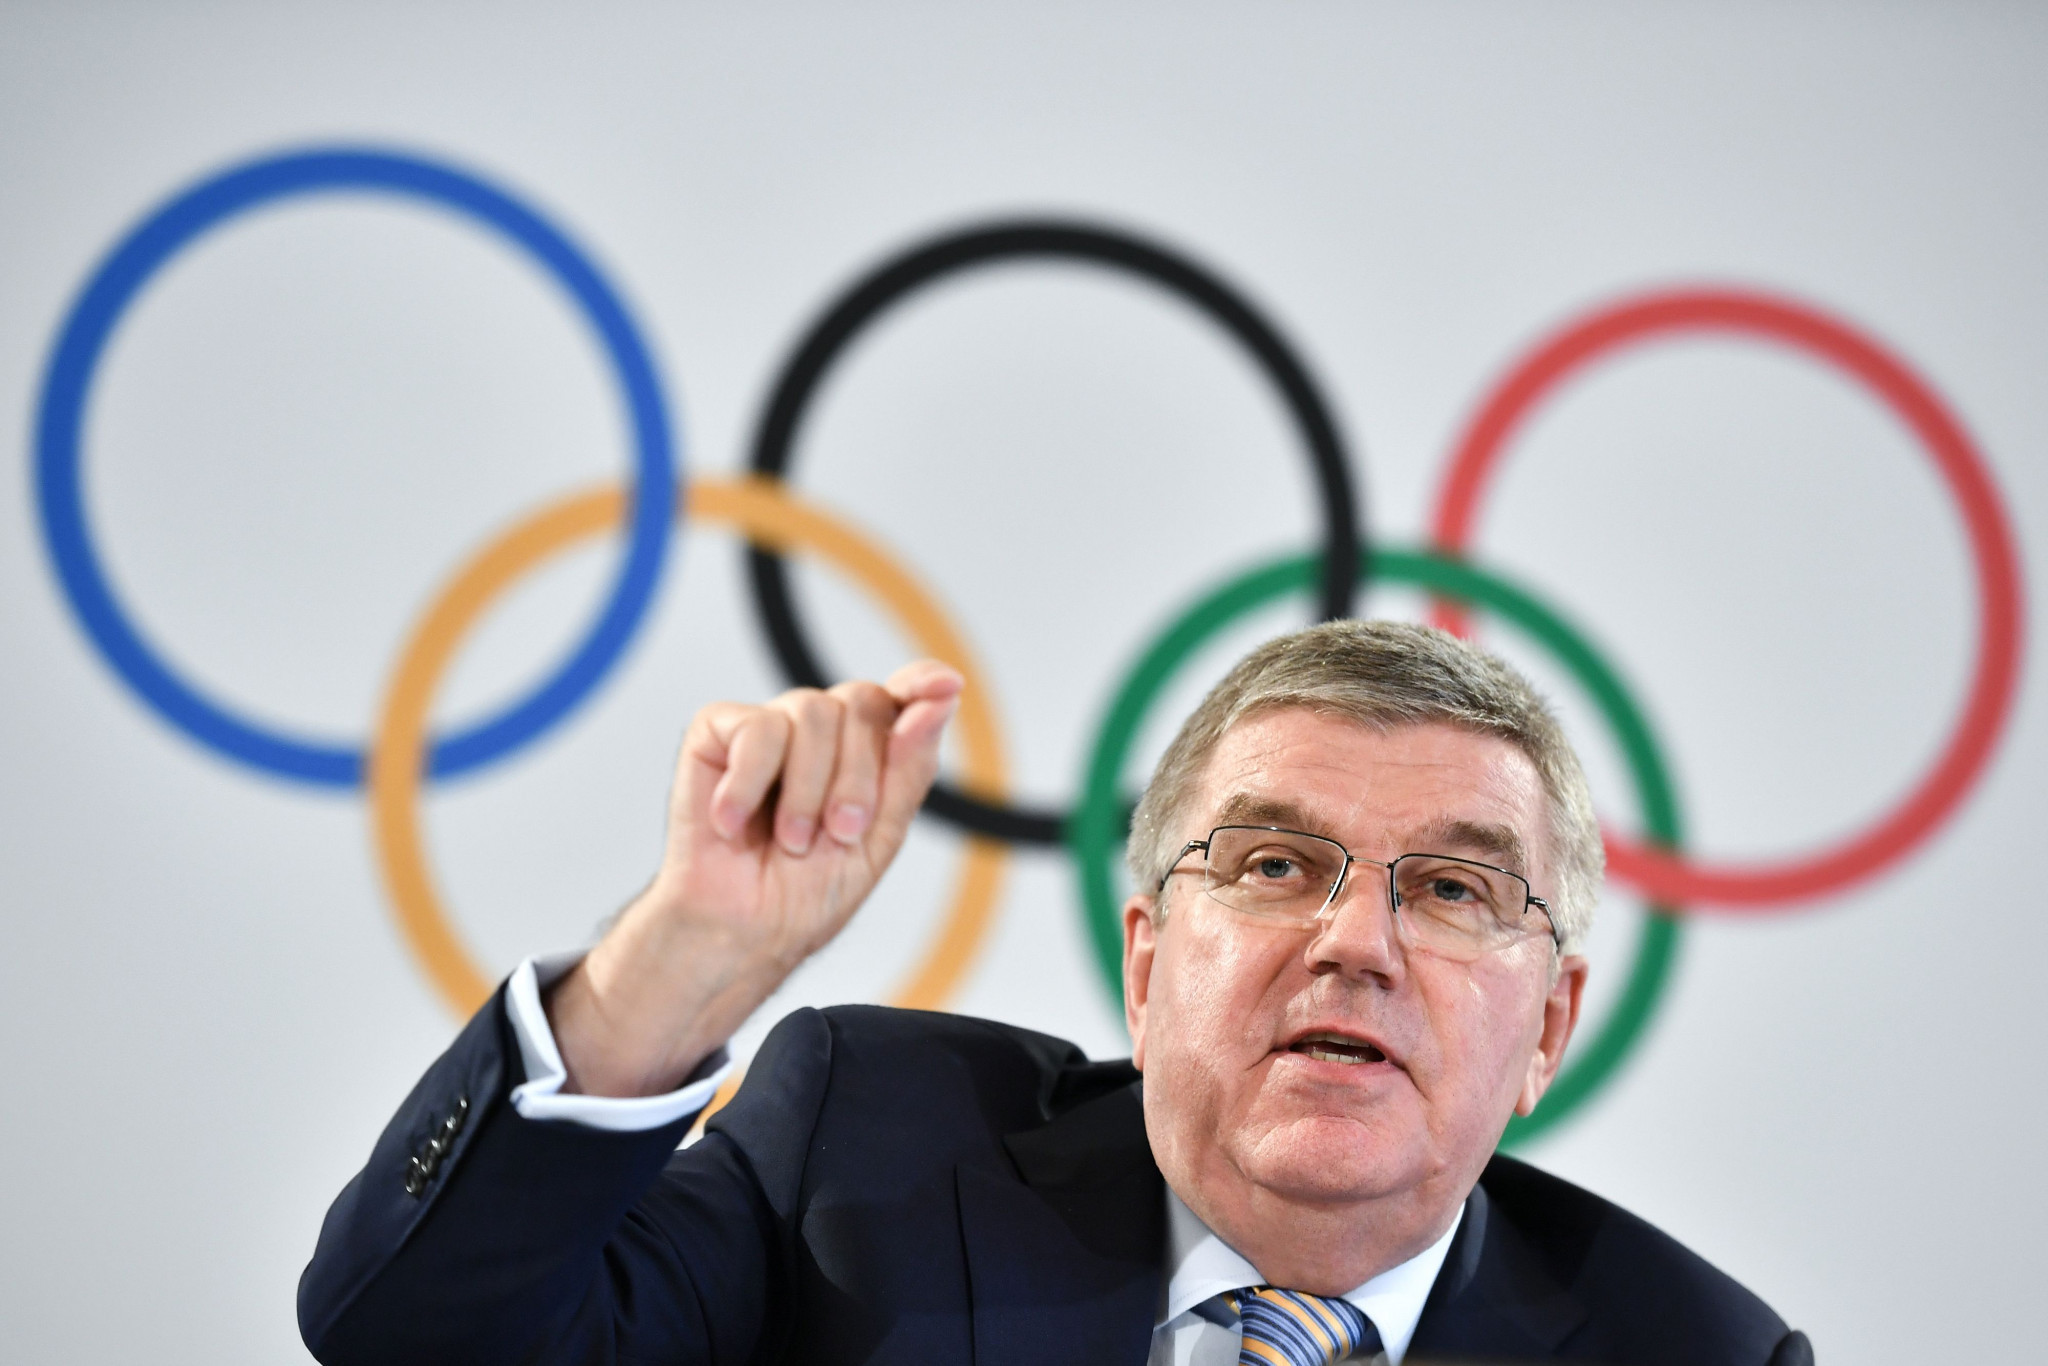 IOC President Thomas Bach has suggested the organisation want a reduced field in future Olympic bidding races ©Getty Images